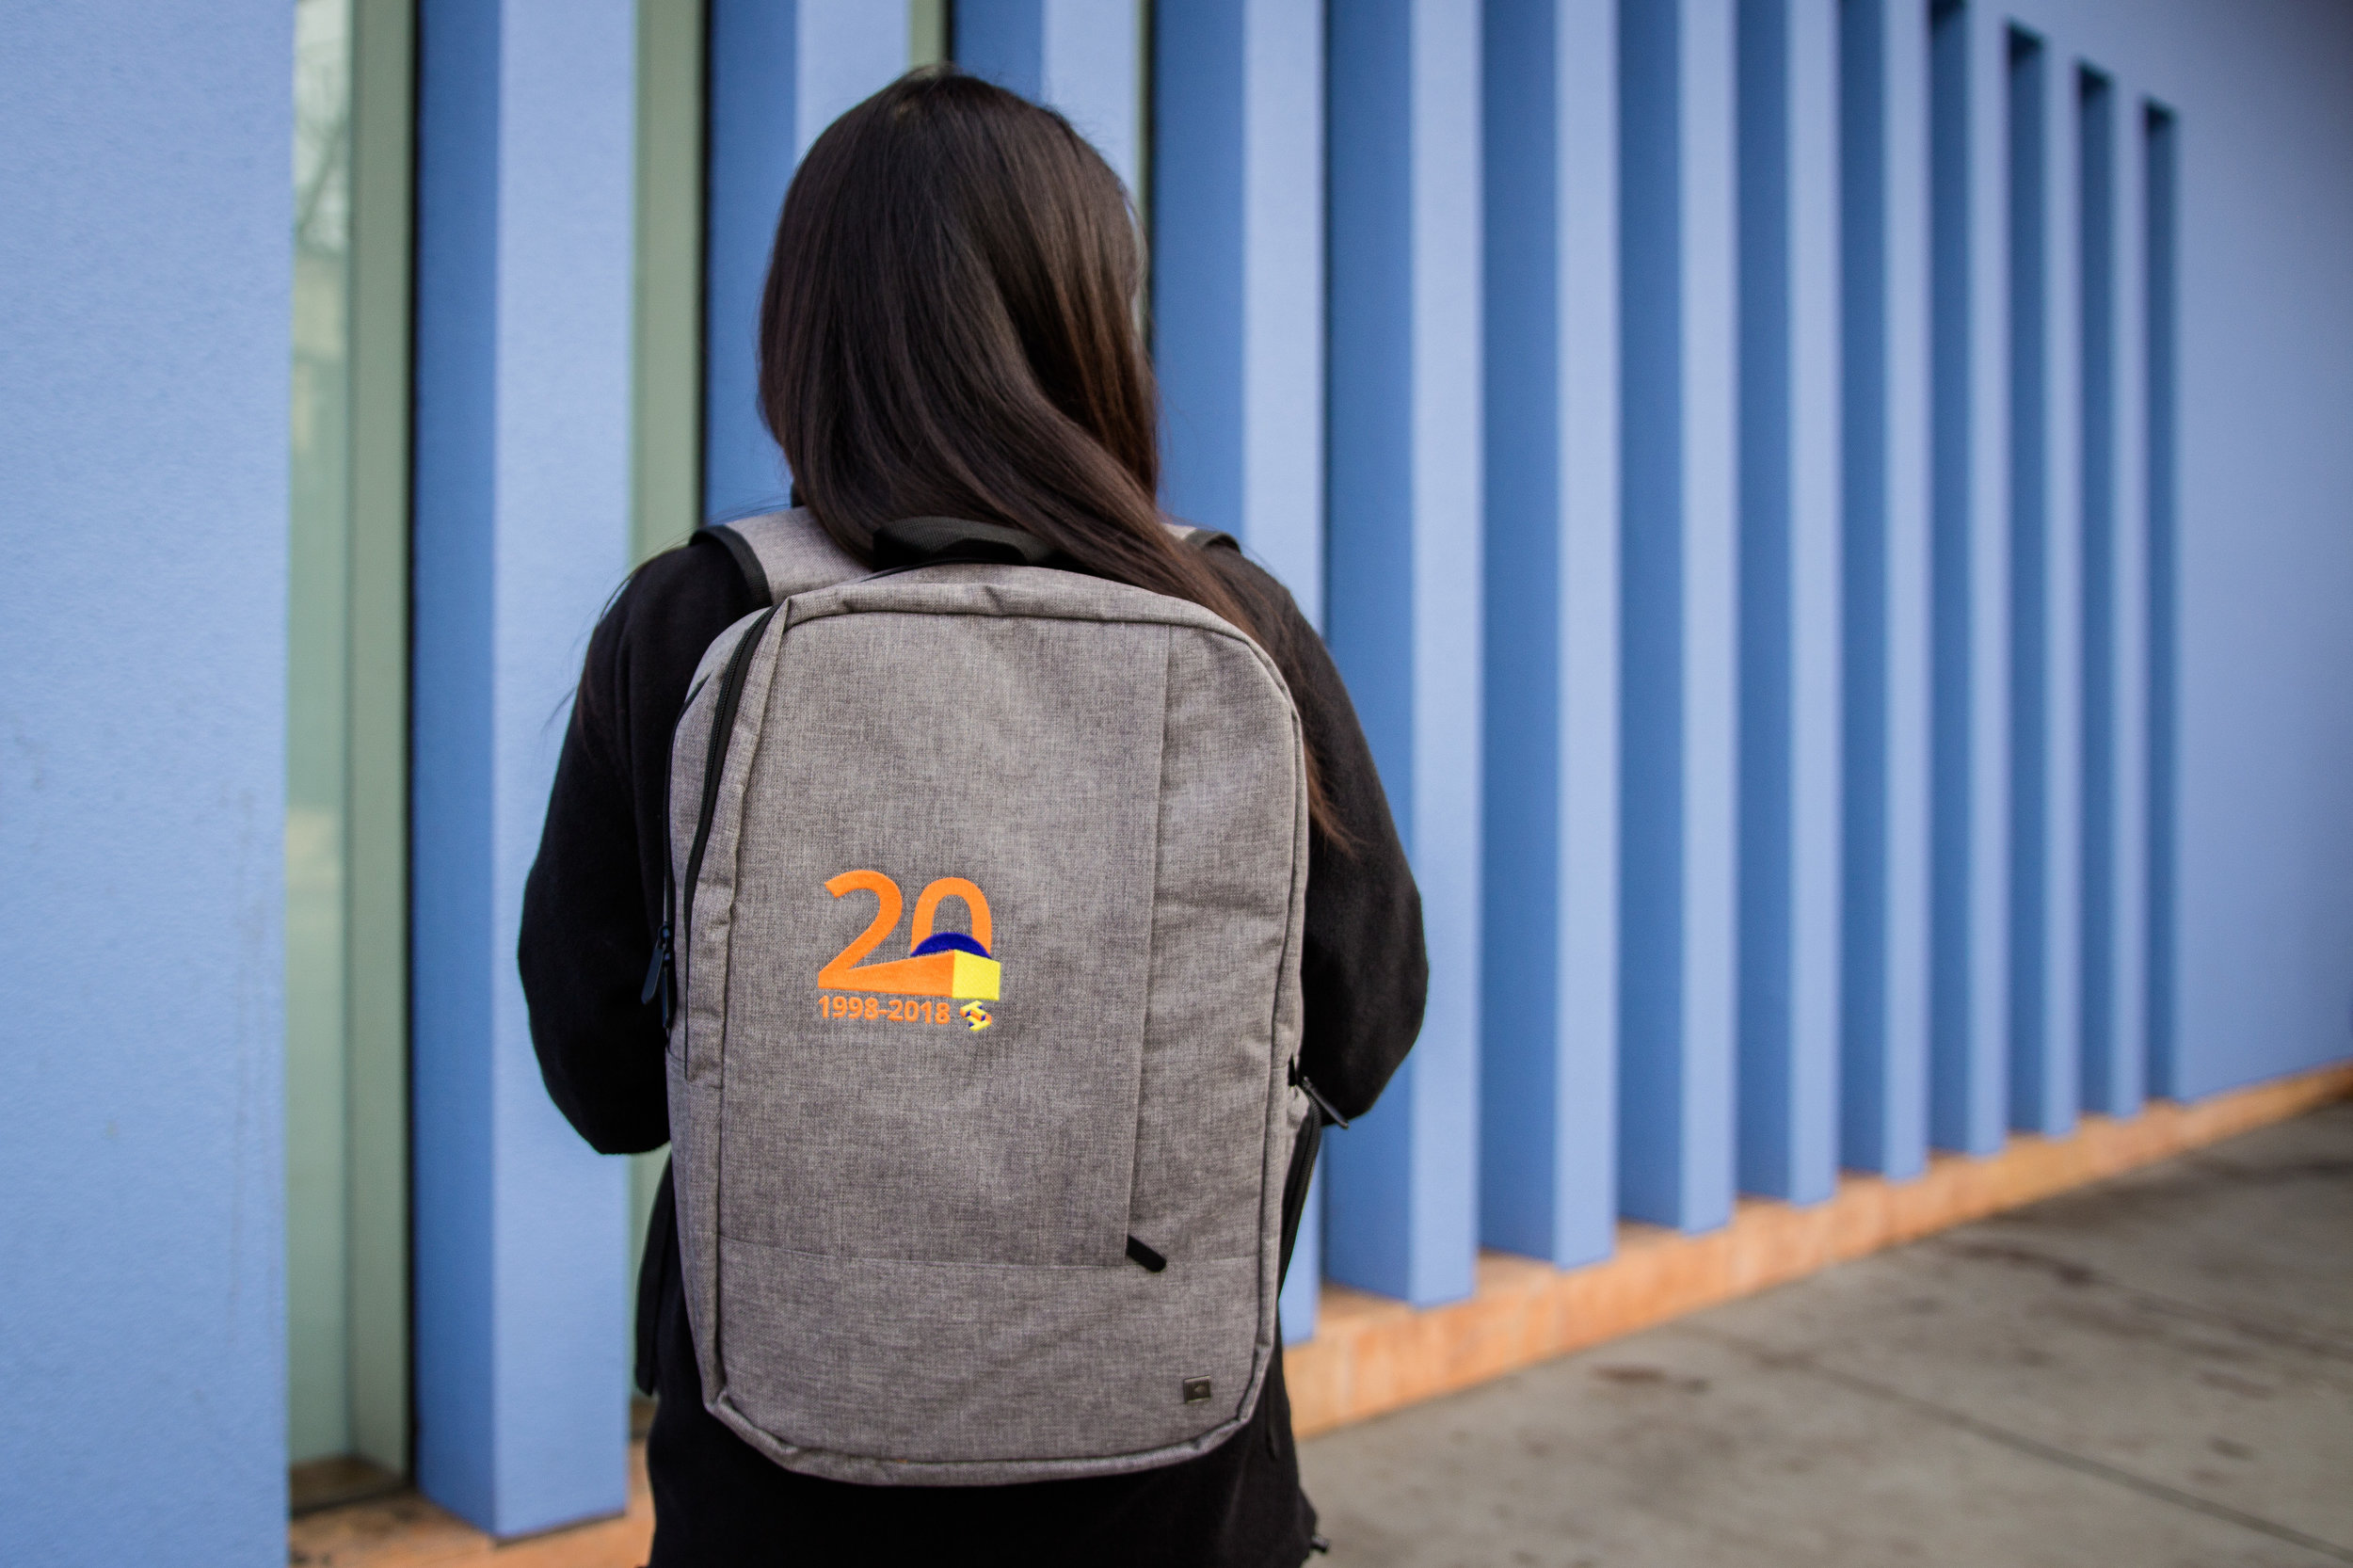 Embroidered backpacks were gifted to staff during our annual holiday party.